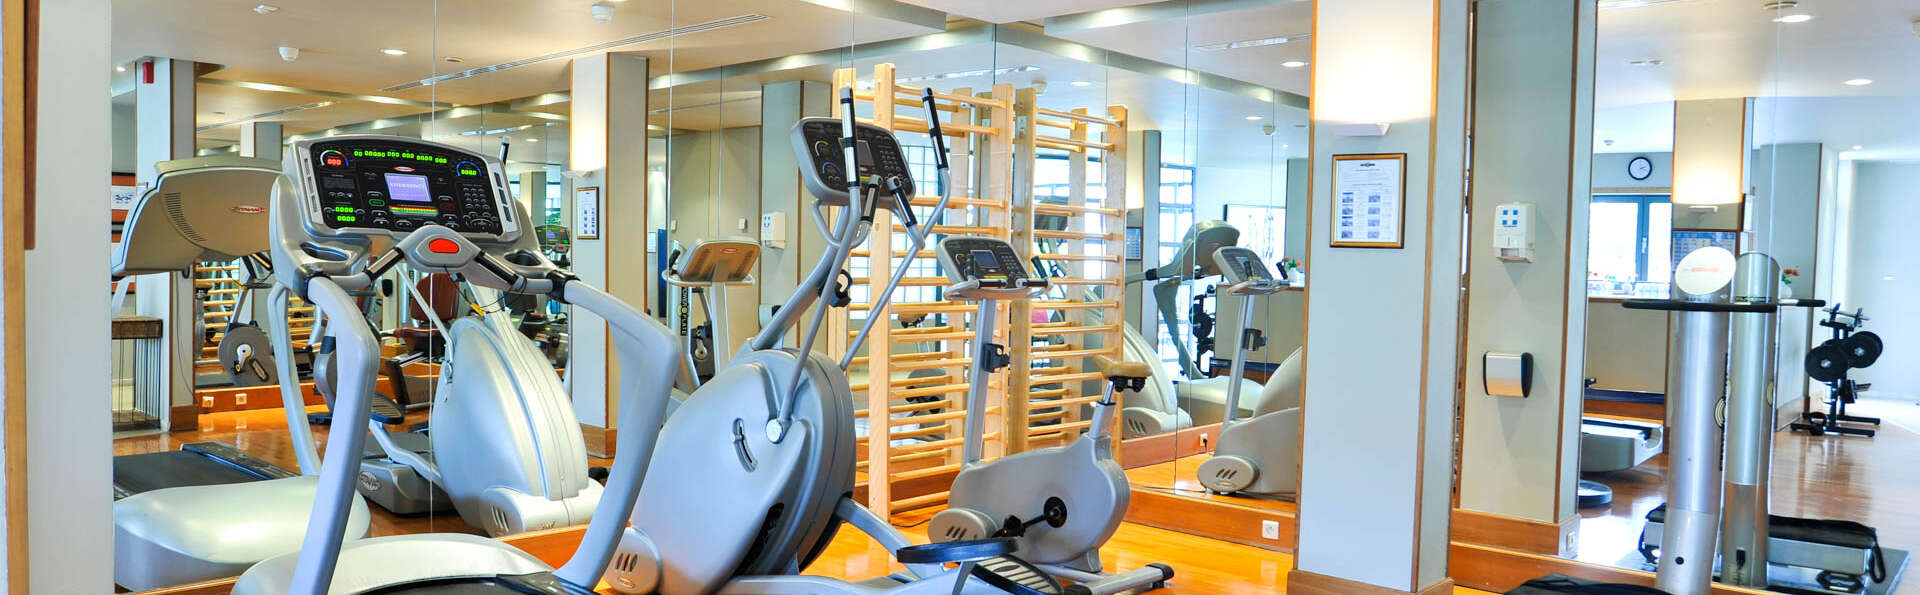 Parker Hotel Brussels Airport - EDIT_NEW_GYM.jpg